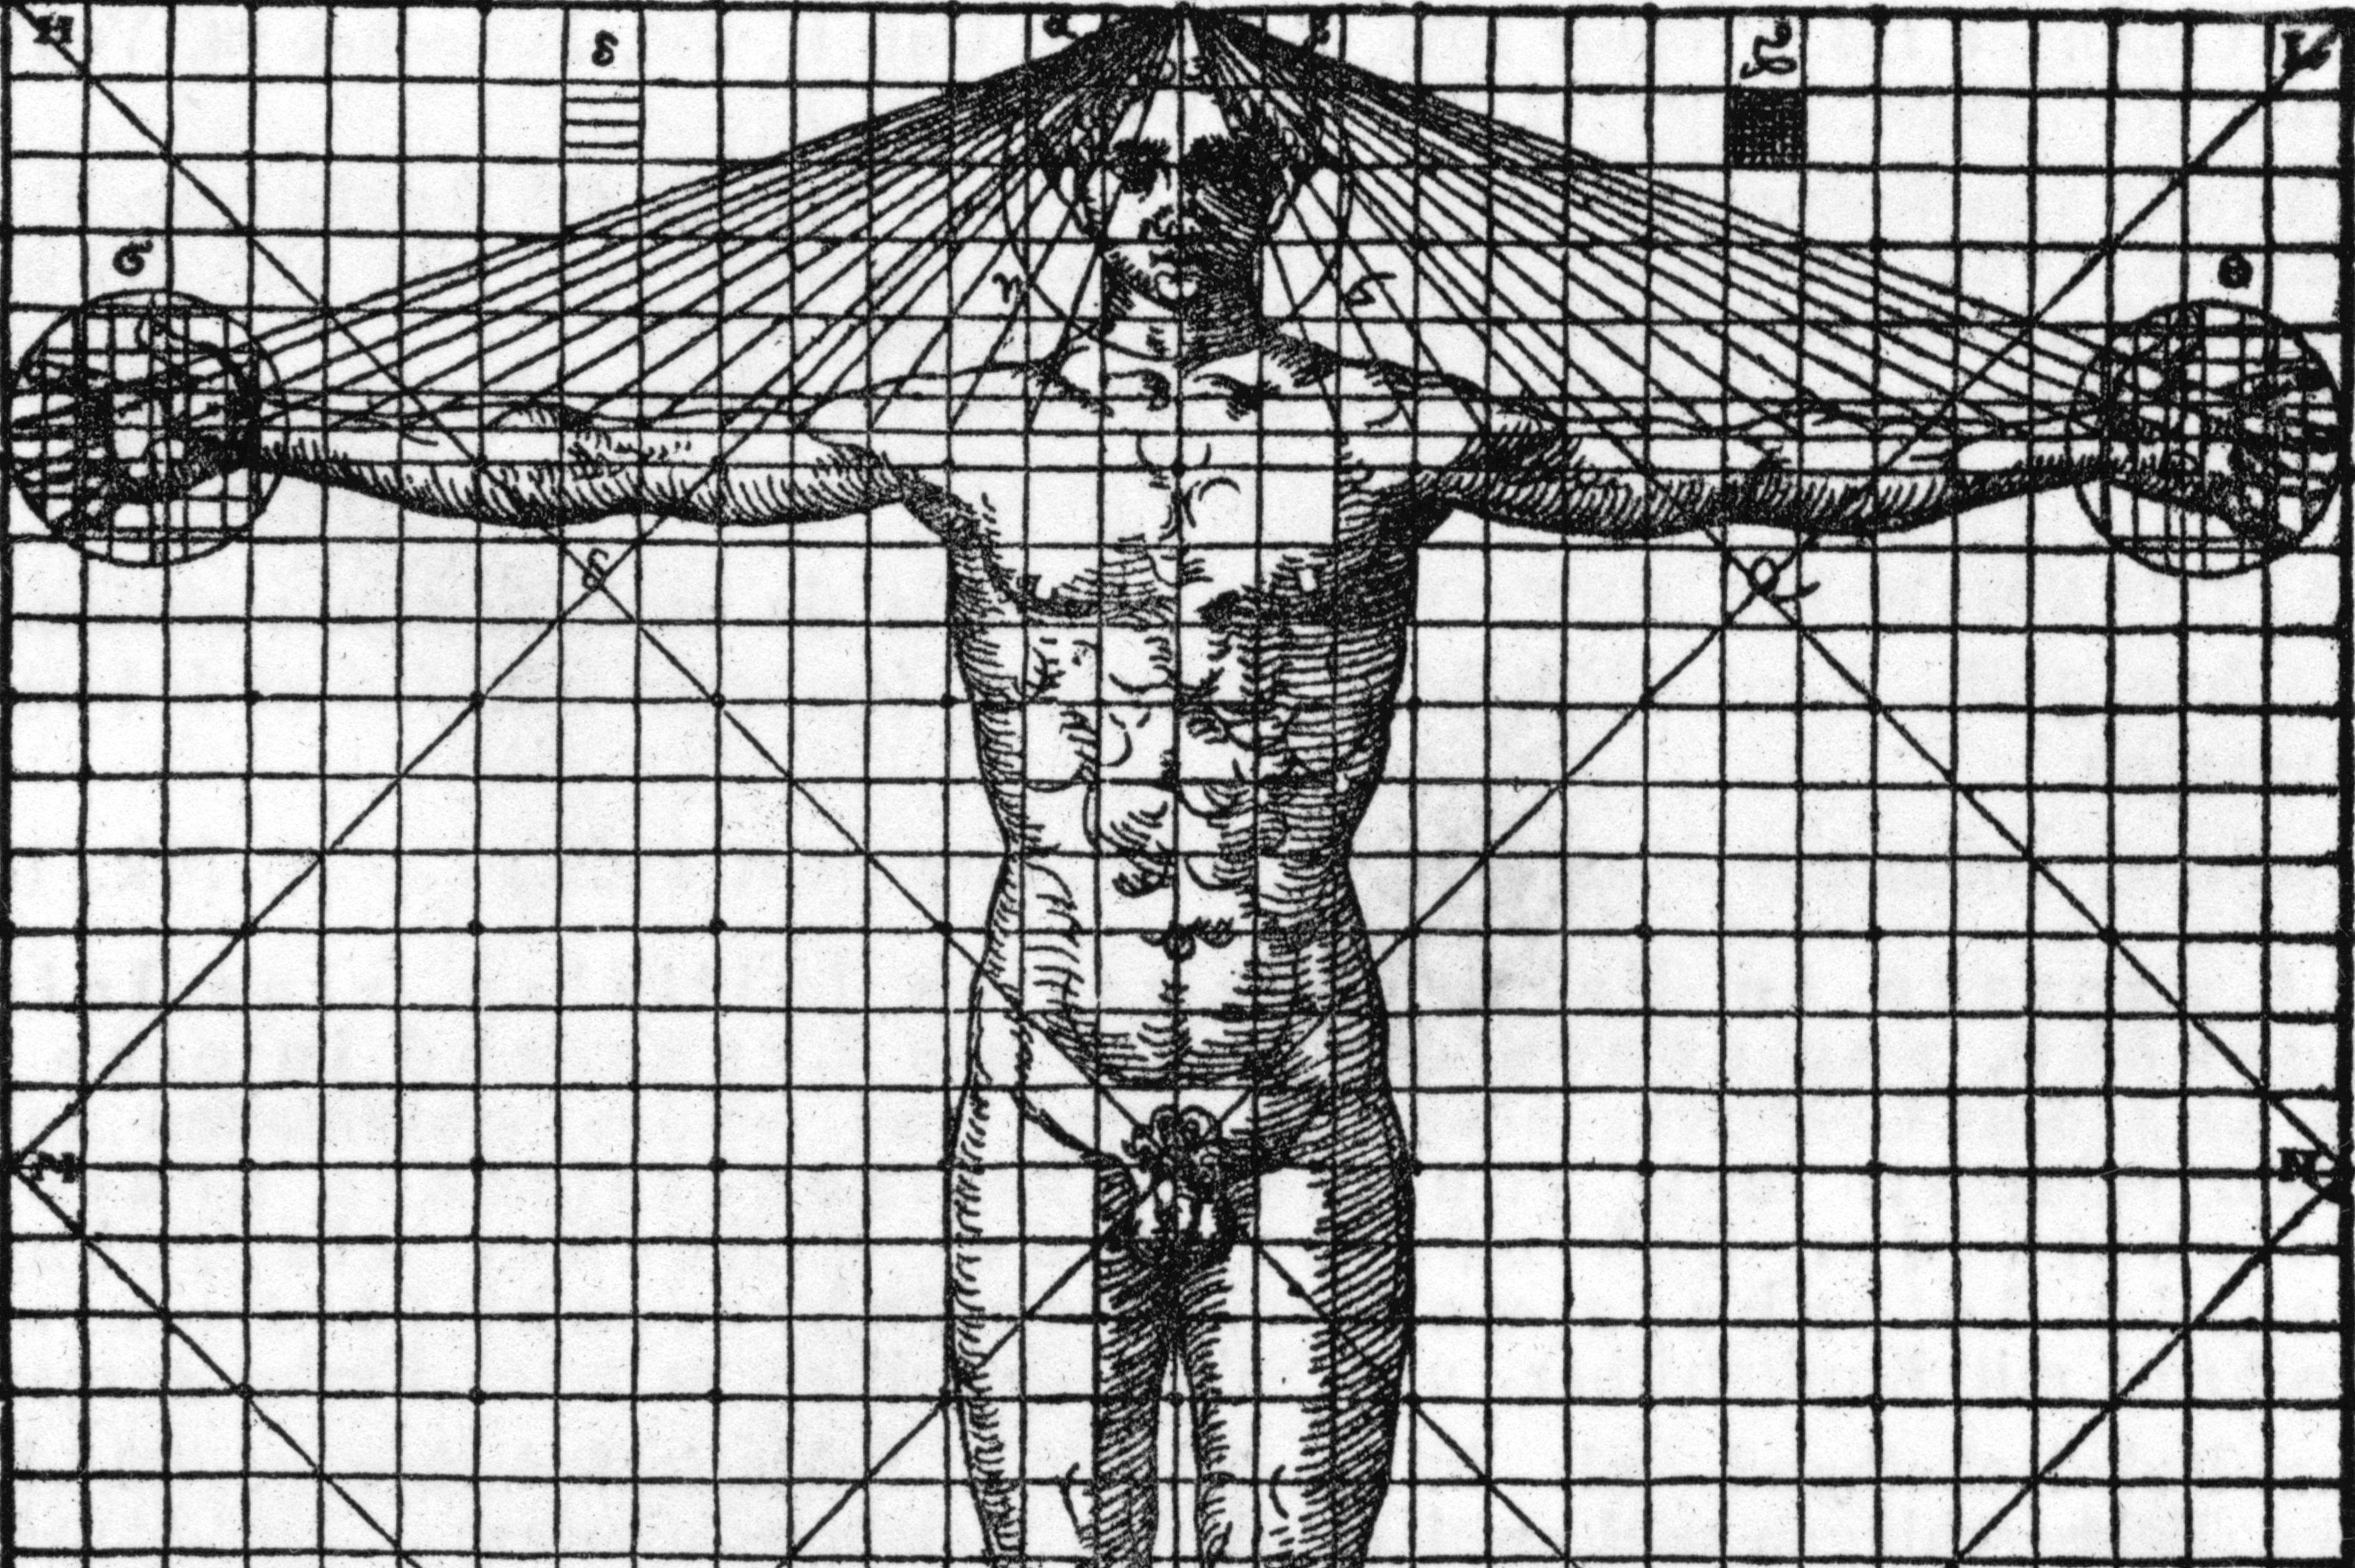 black and white illustration of human man's front on a graph with lines showing symmetry and proportion